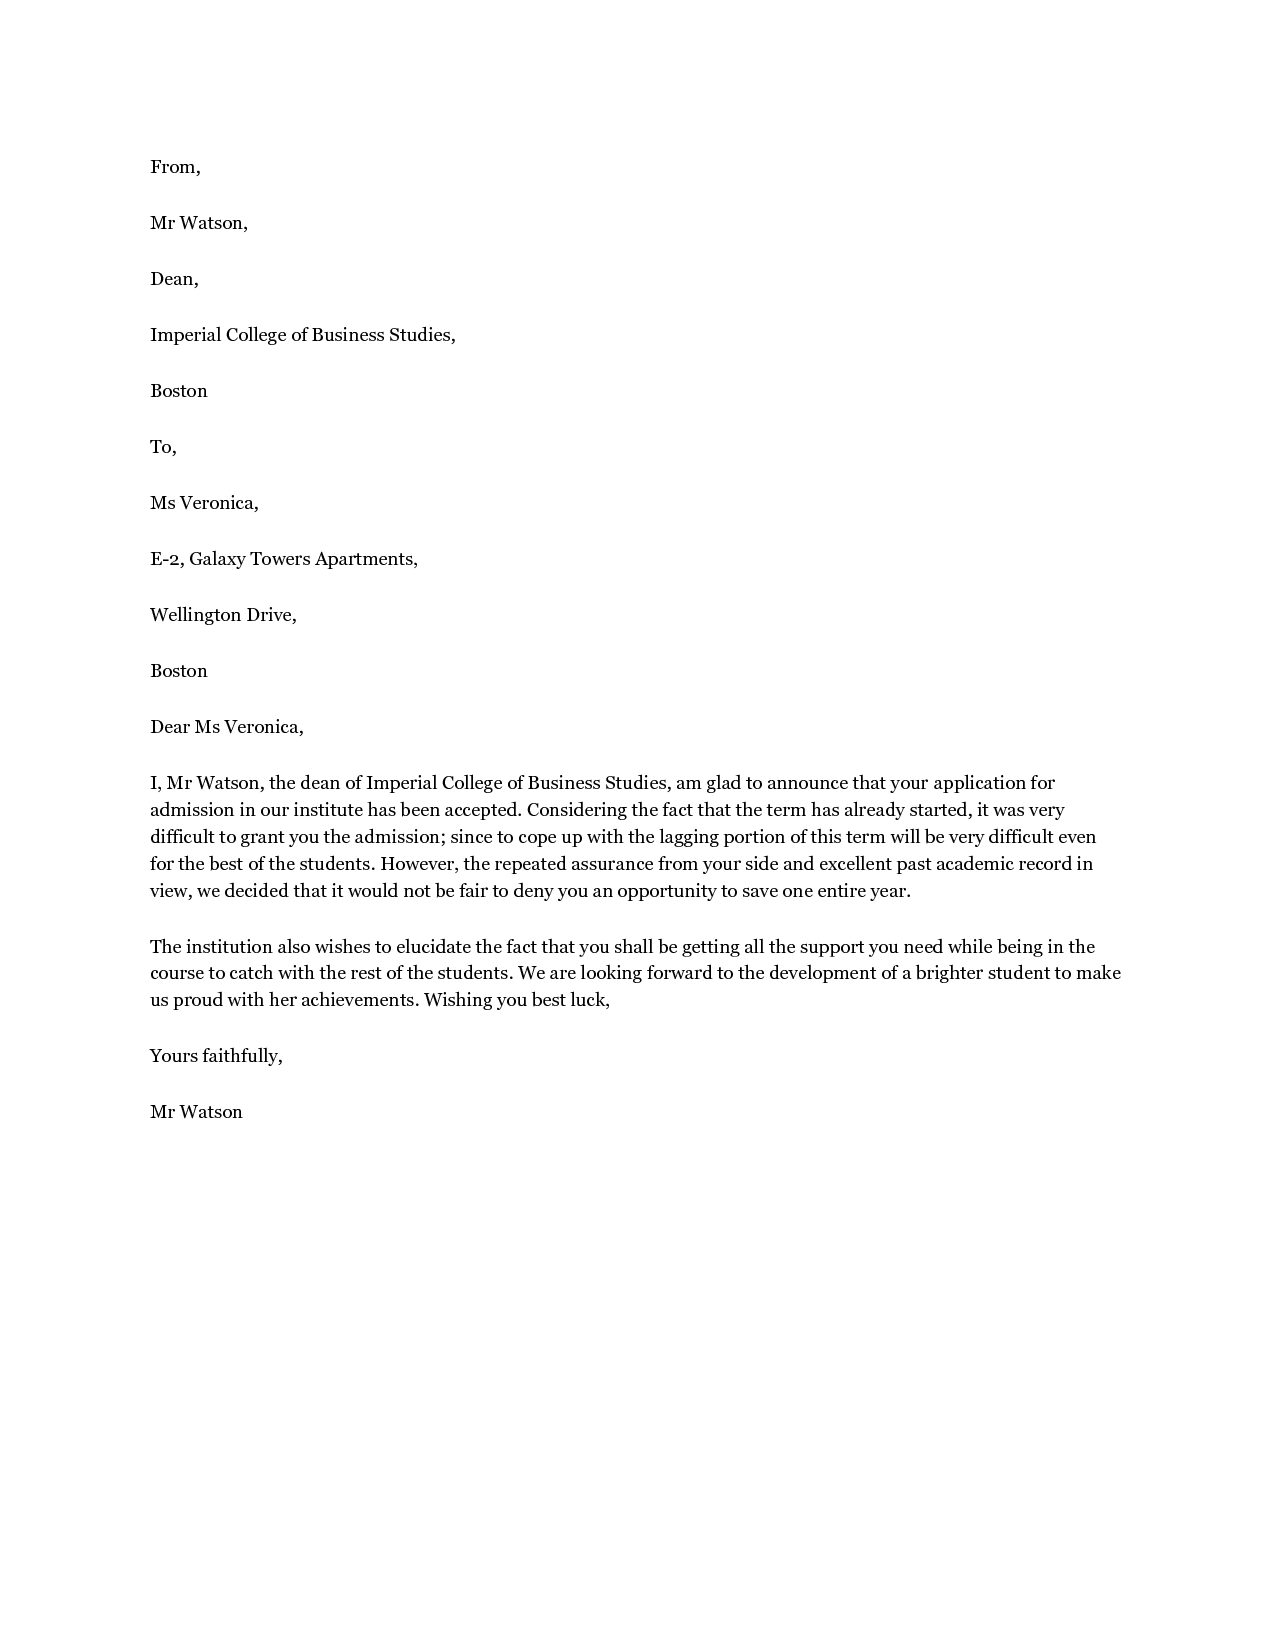 Please read my Academic Suspension Appeal Letter?